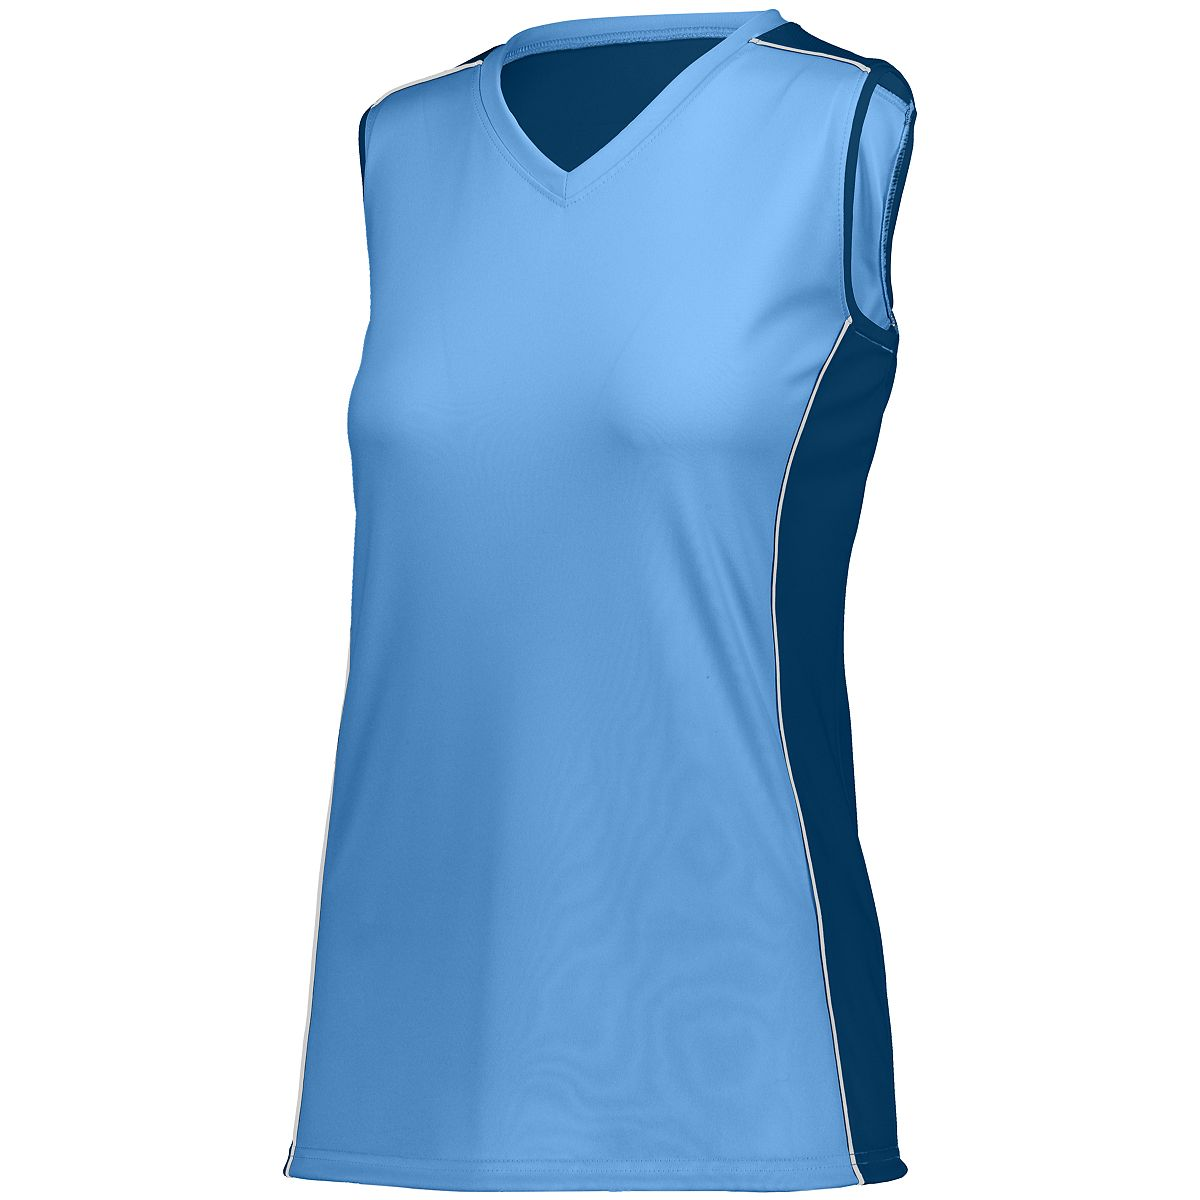 Augusta Ladies Paragon Jersey Cb/Nv/Wh Xl - image 1 of 1